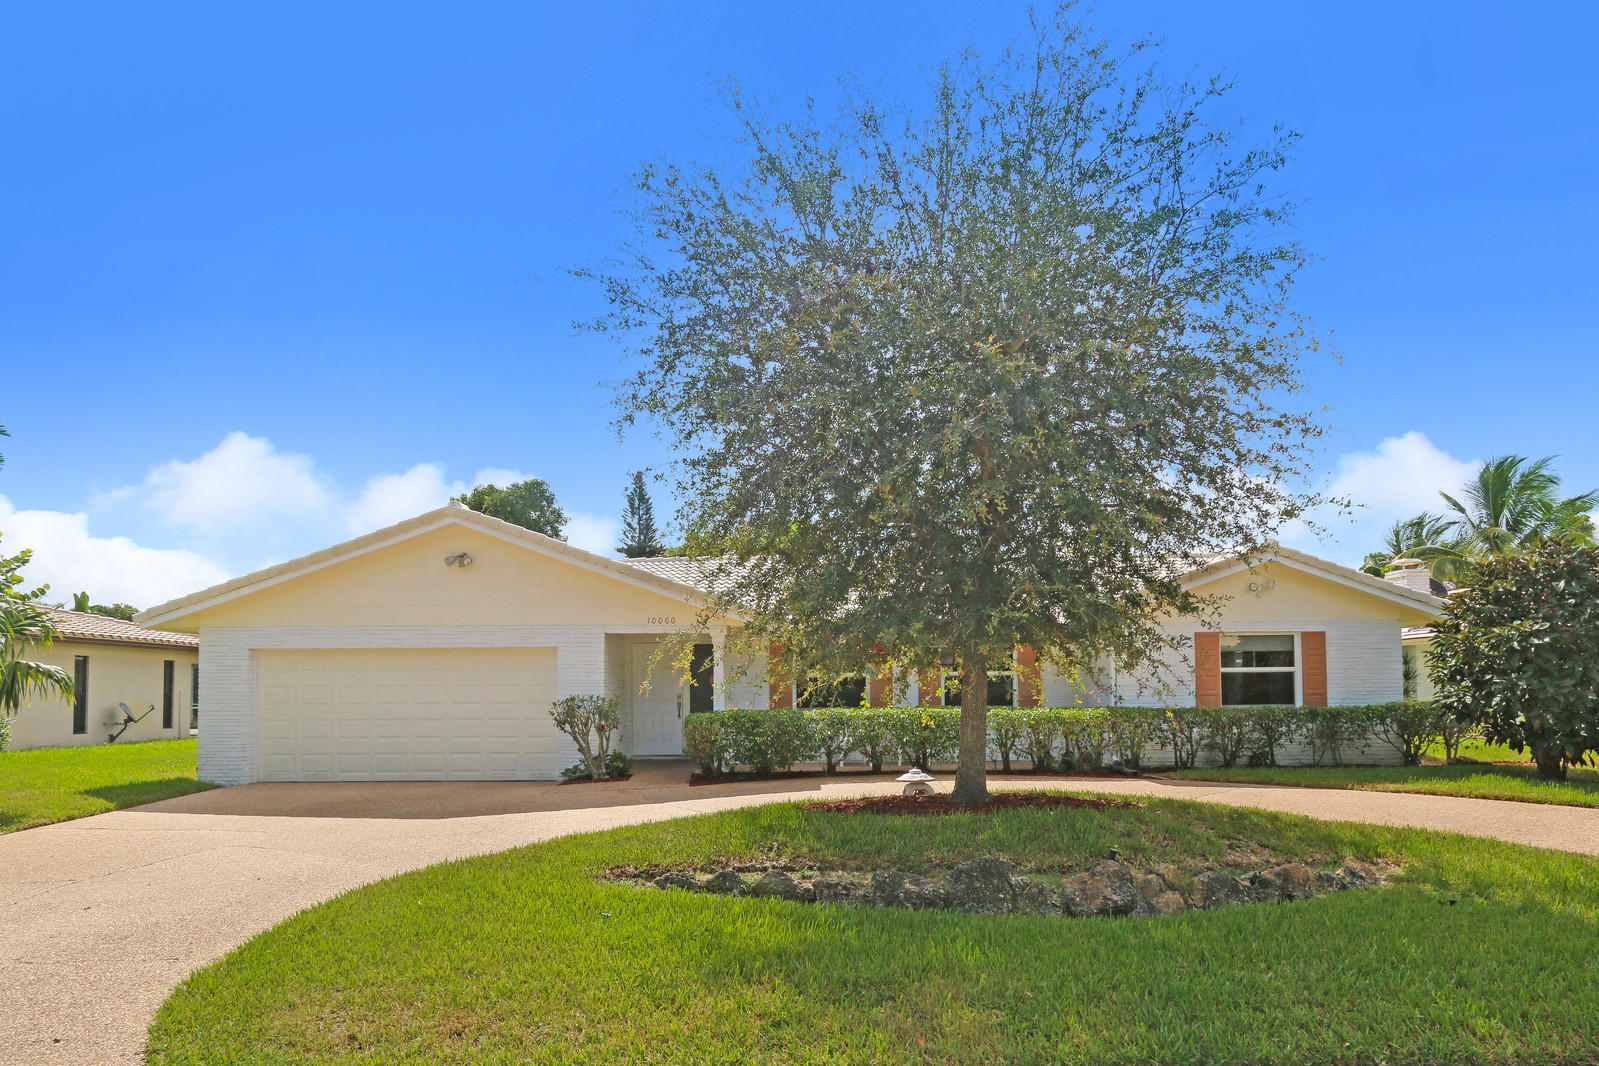 Home for sale in Coral Springs Lakes Coral Springs Florida